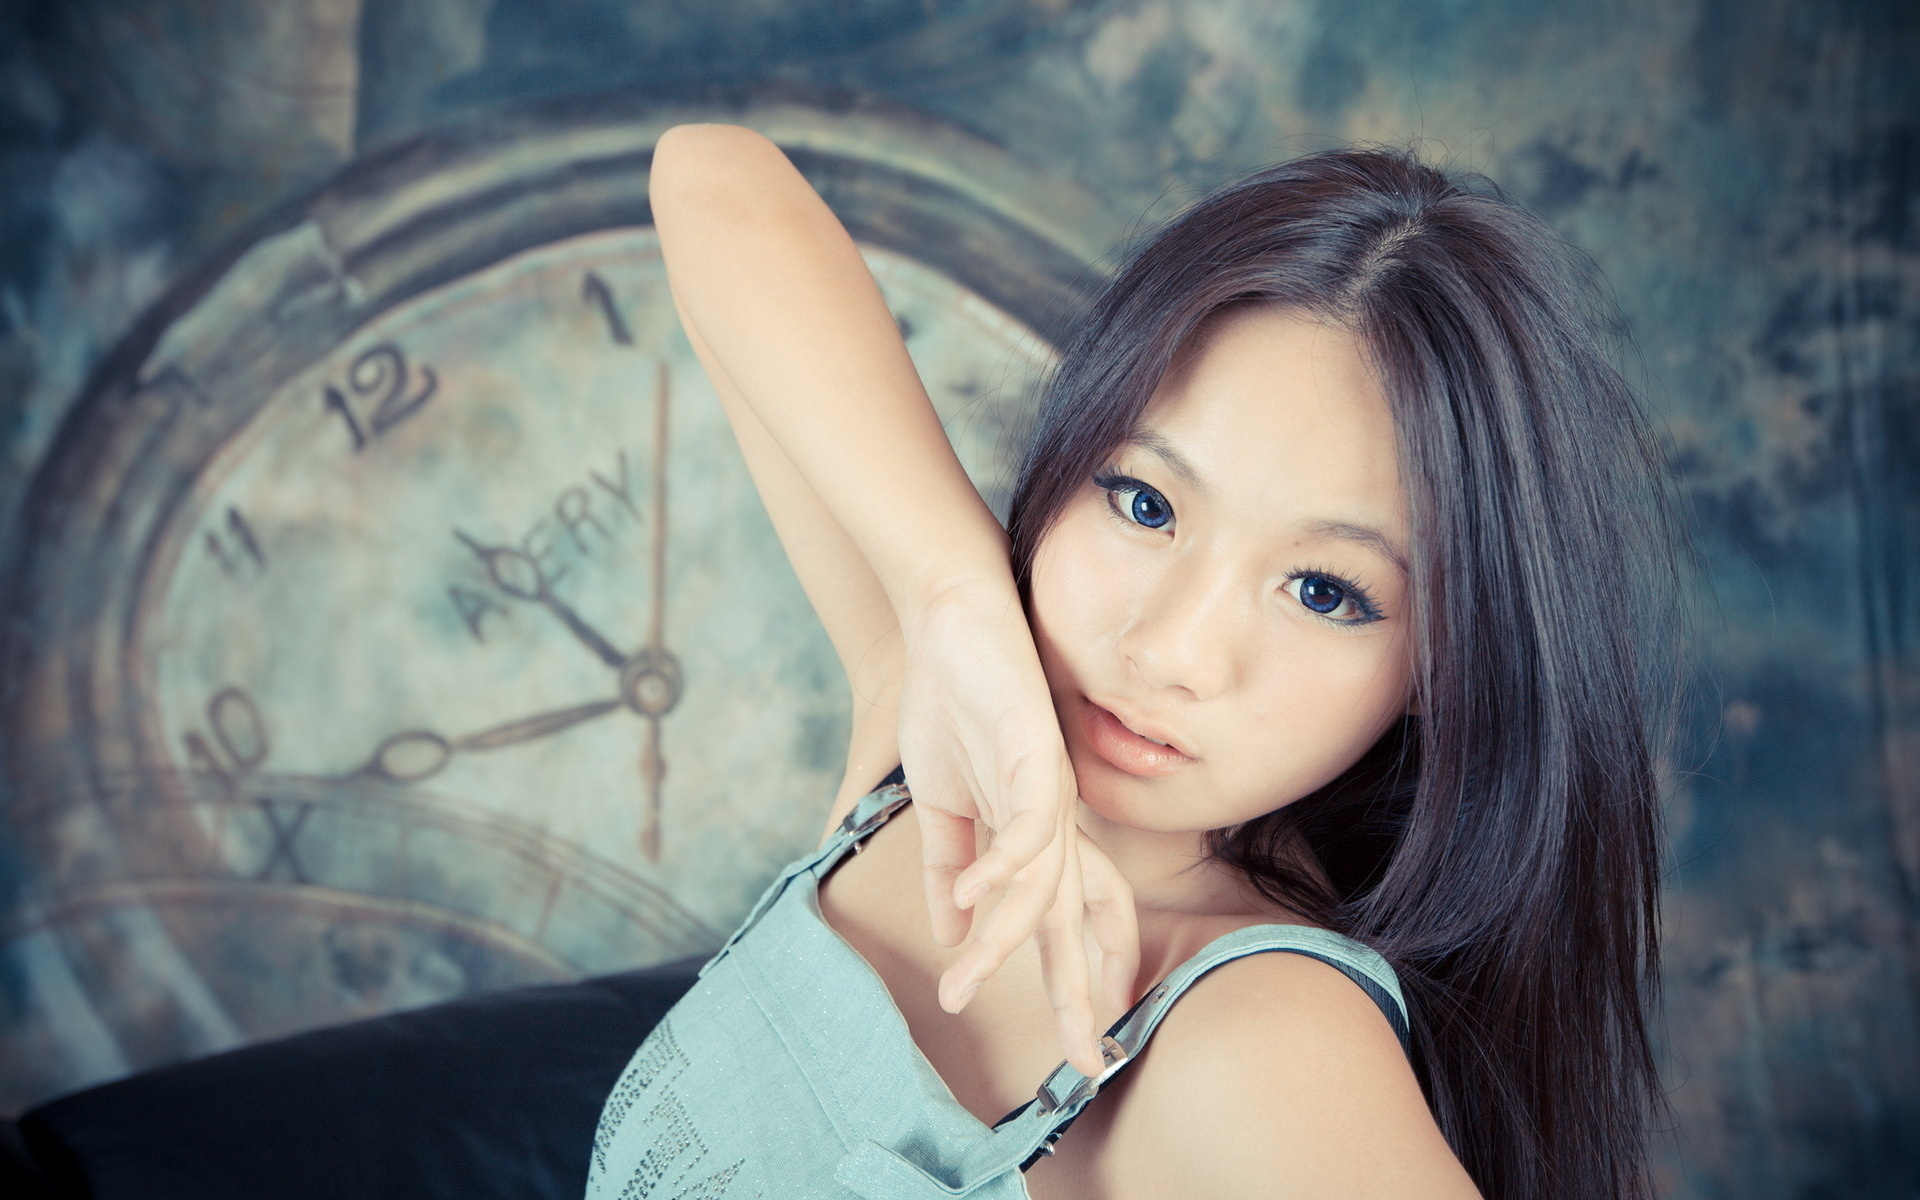 Asian Hd Wallpaper  Background Image  1920X1200  Id -5227